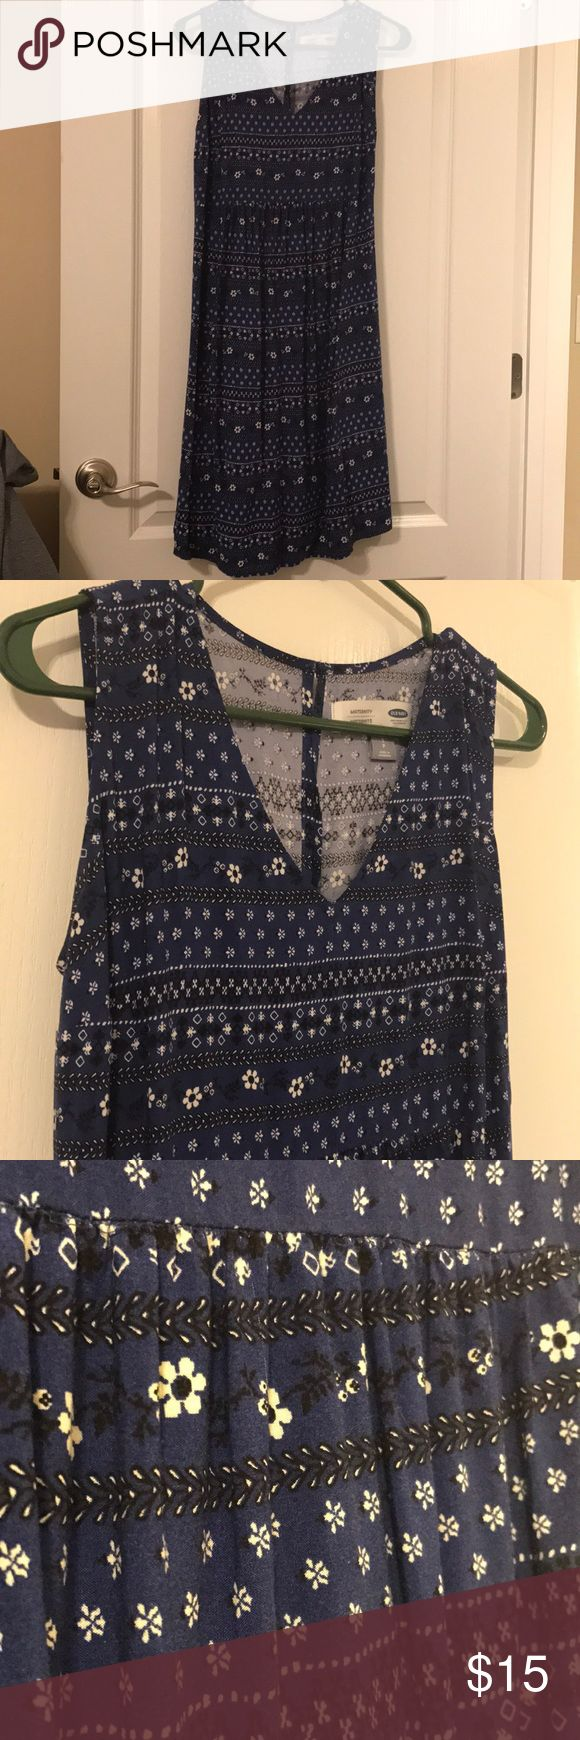 NWOT Old Navy Maternity NWOT Old Navy maternity dress. NWOT, never worn. Size small. Old Navy Dresses